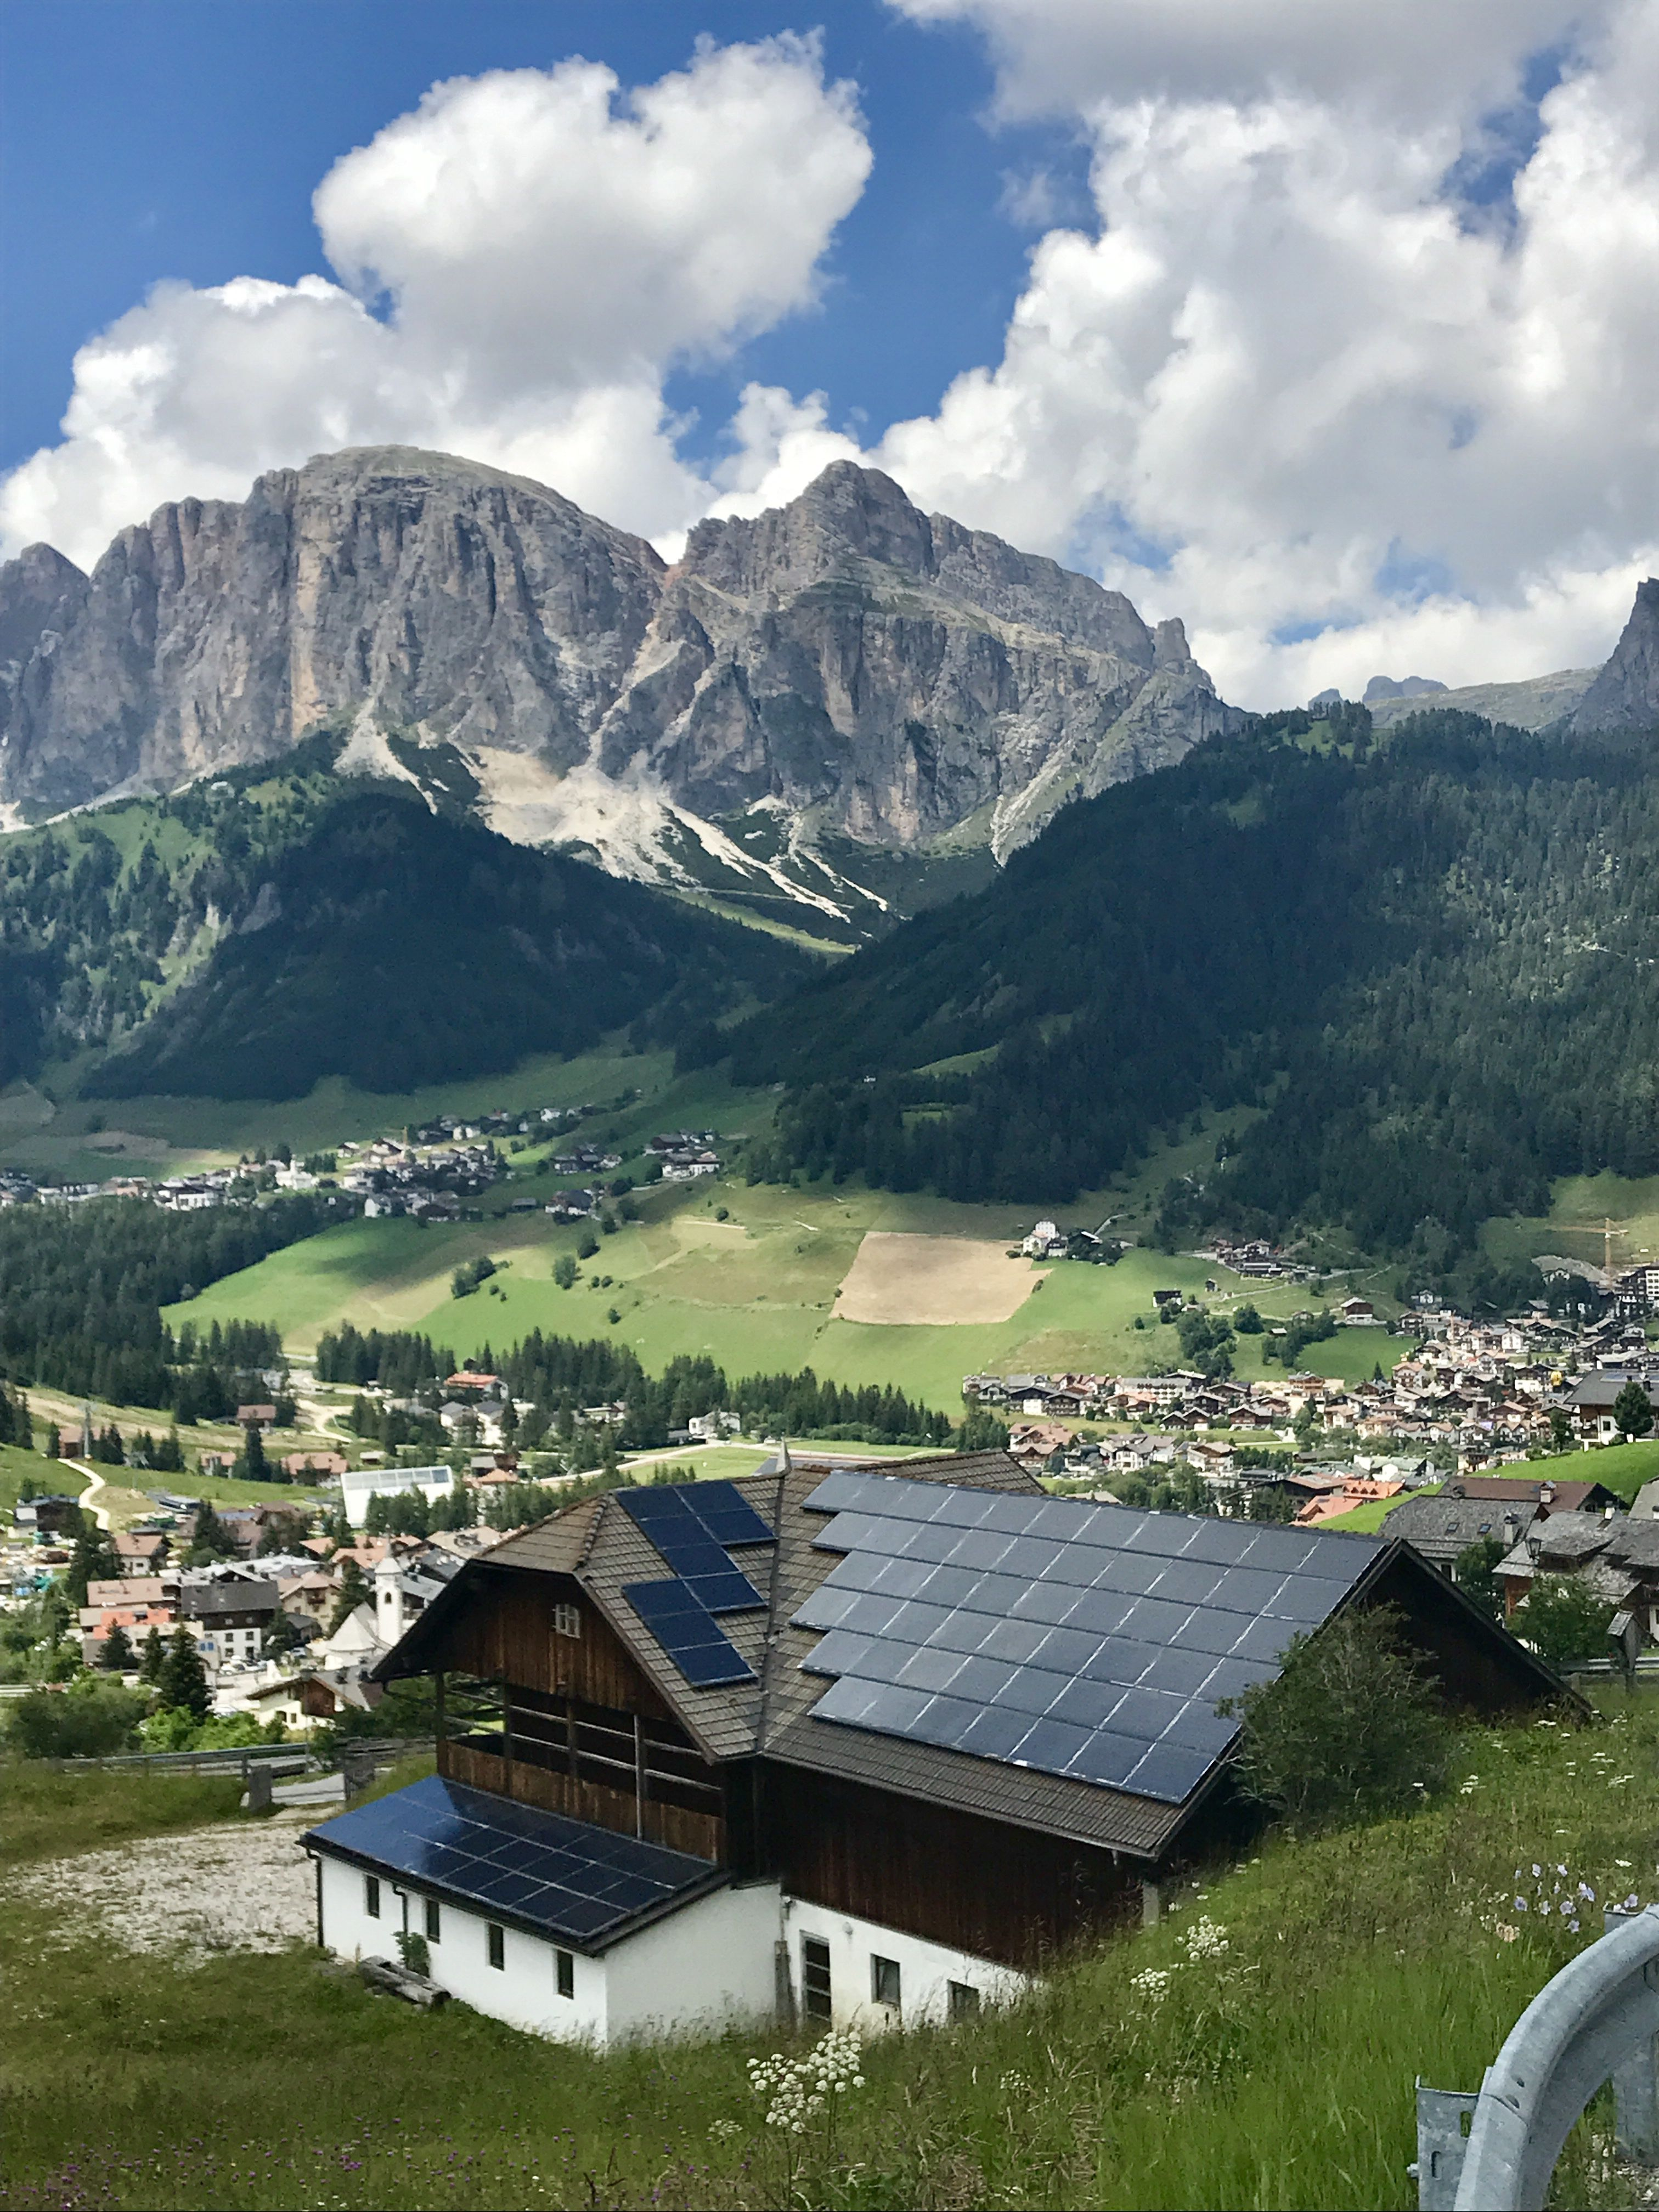 Rooftop solar in the Dolomite mountains